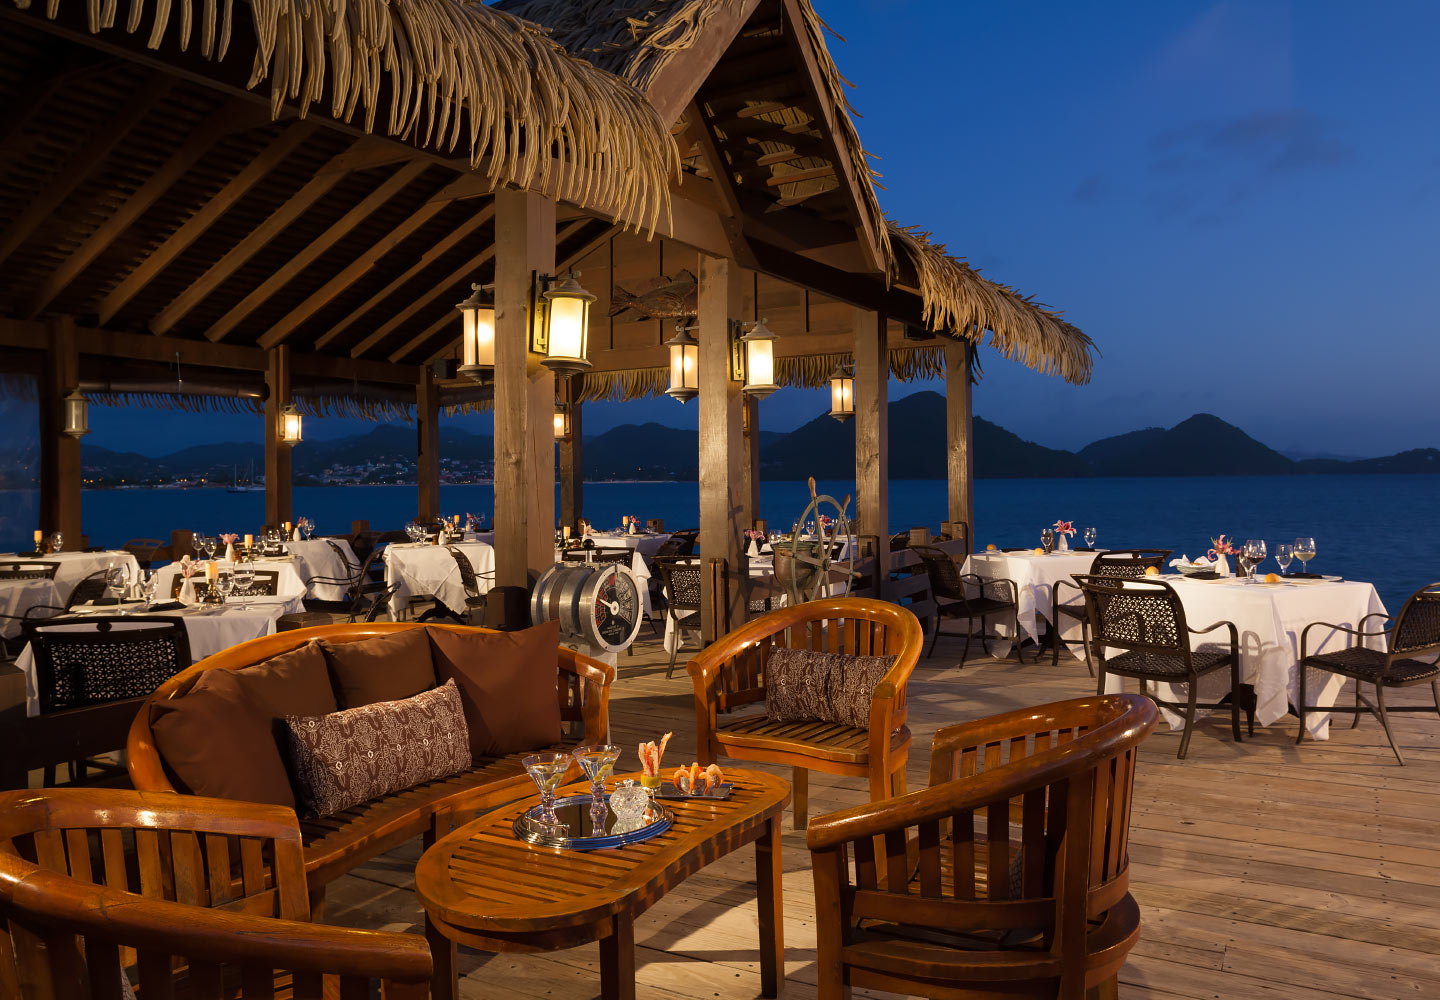 , Sandals Grand St. Lucian, AMERICAN ACADEMY OF HOSPITALITY SCIENCES